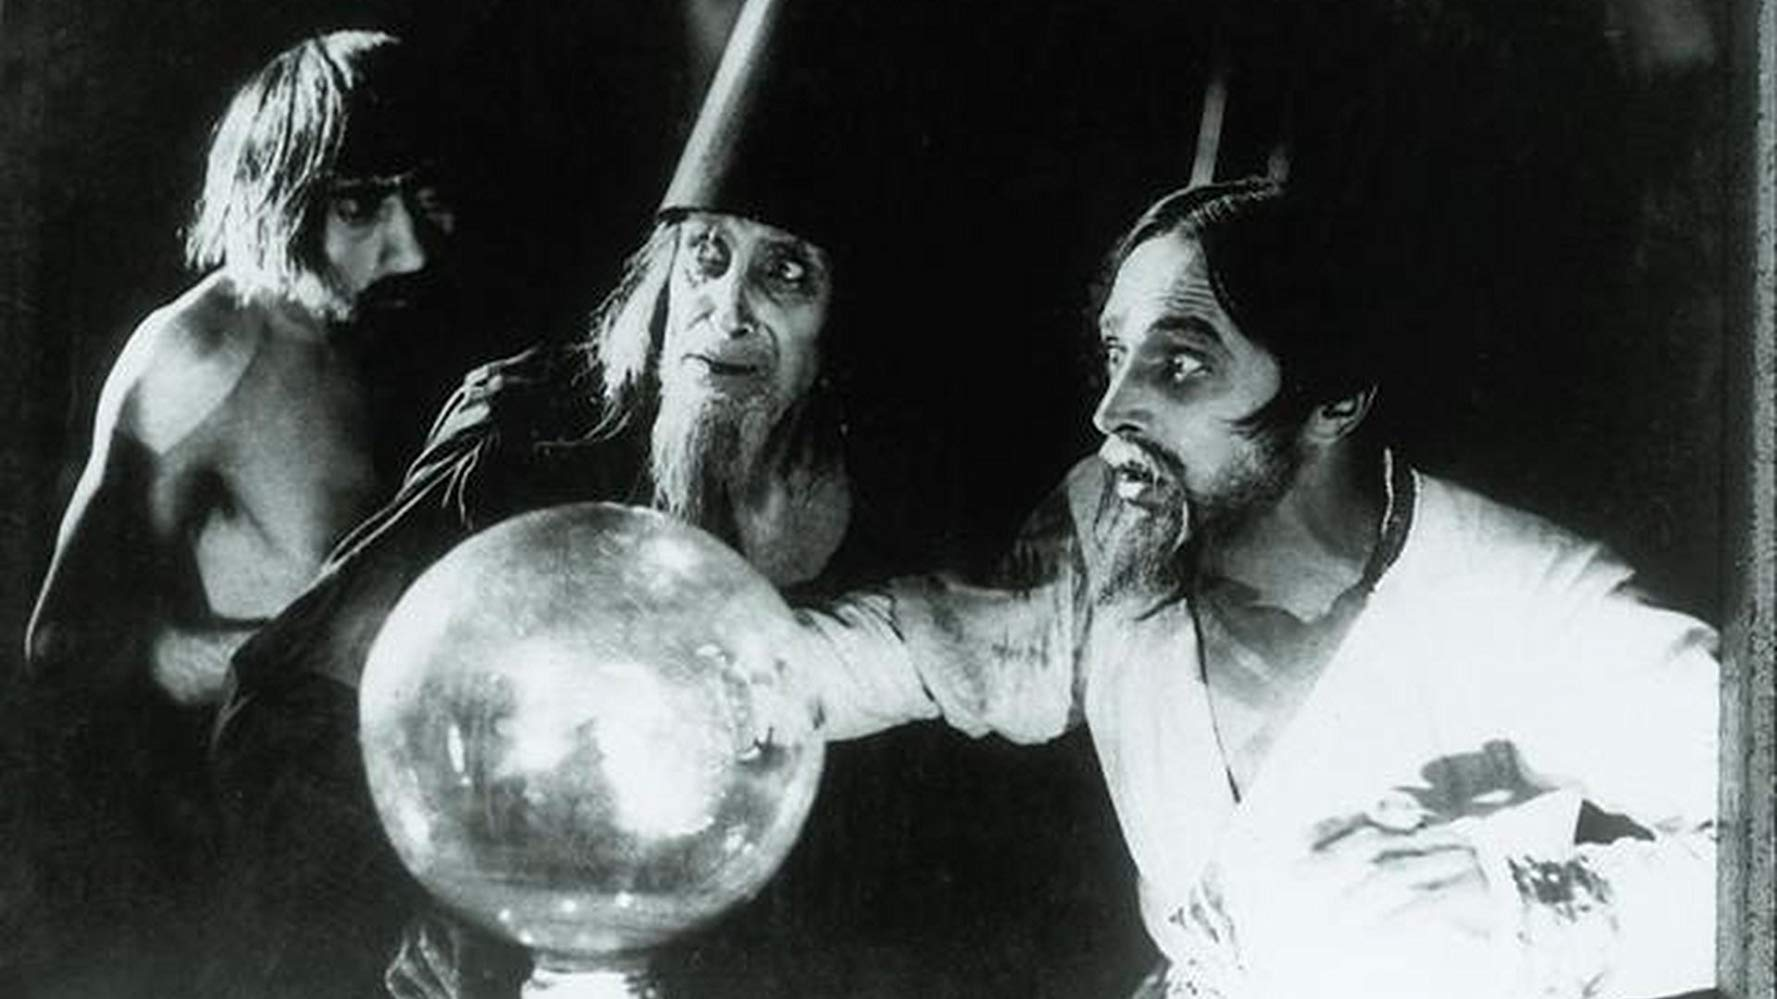 Conrad Veidt as Ivan the Terrible in Waxworks (1924)